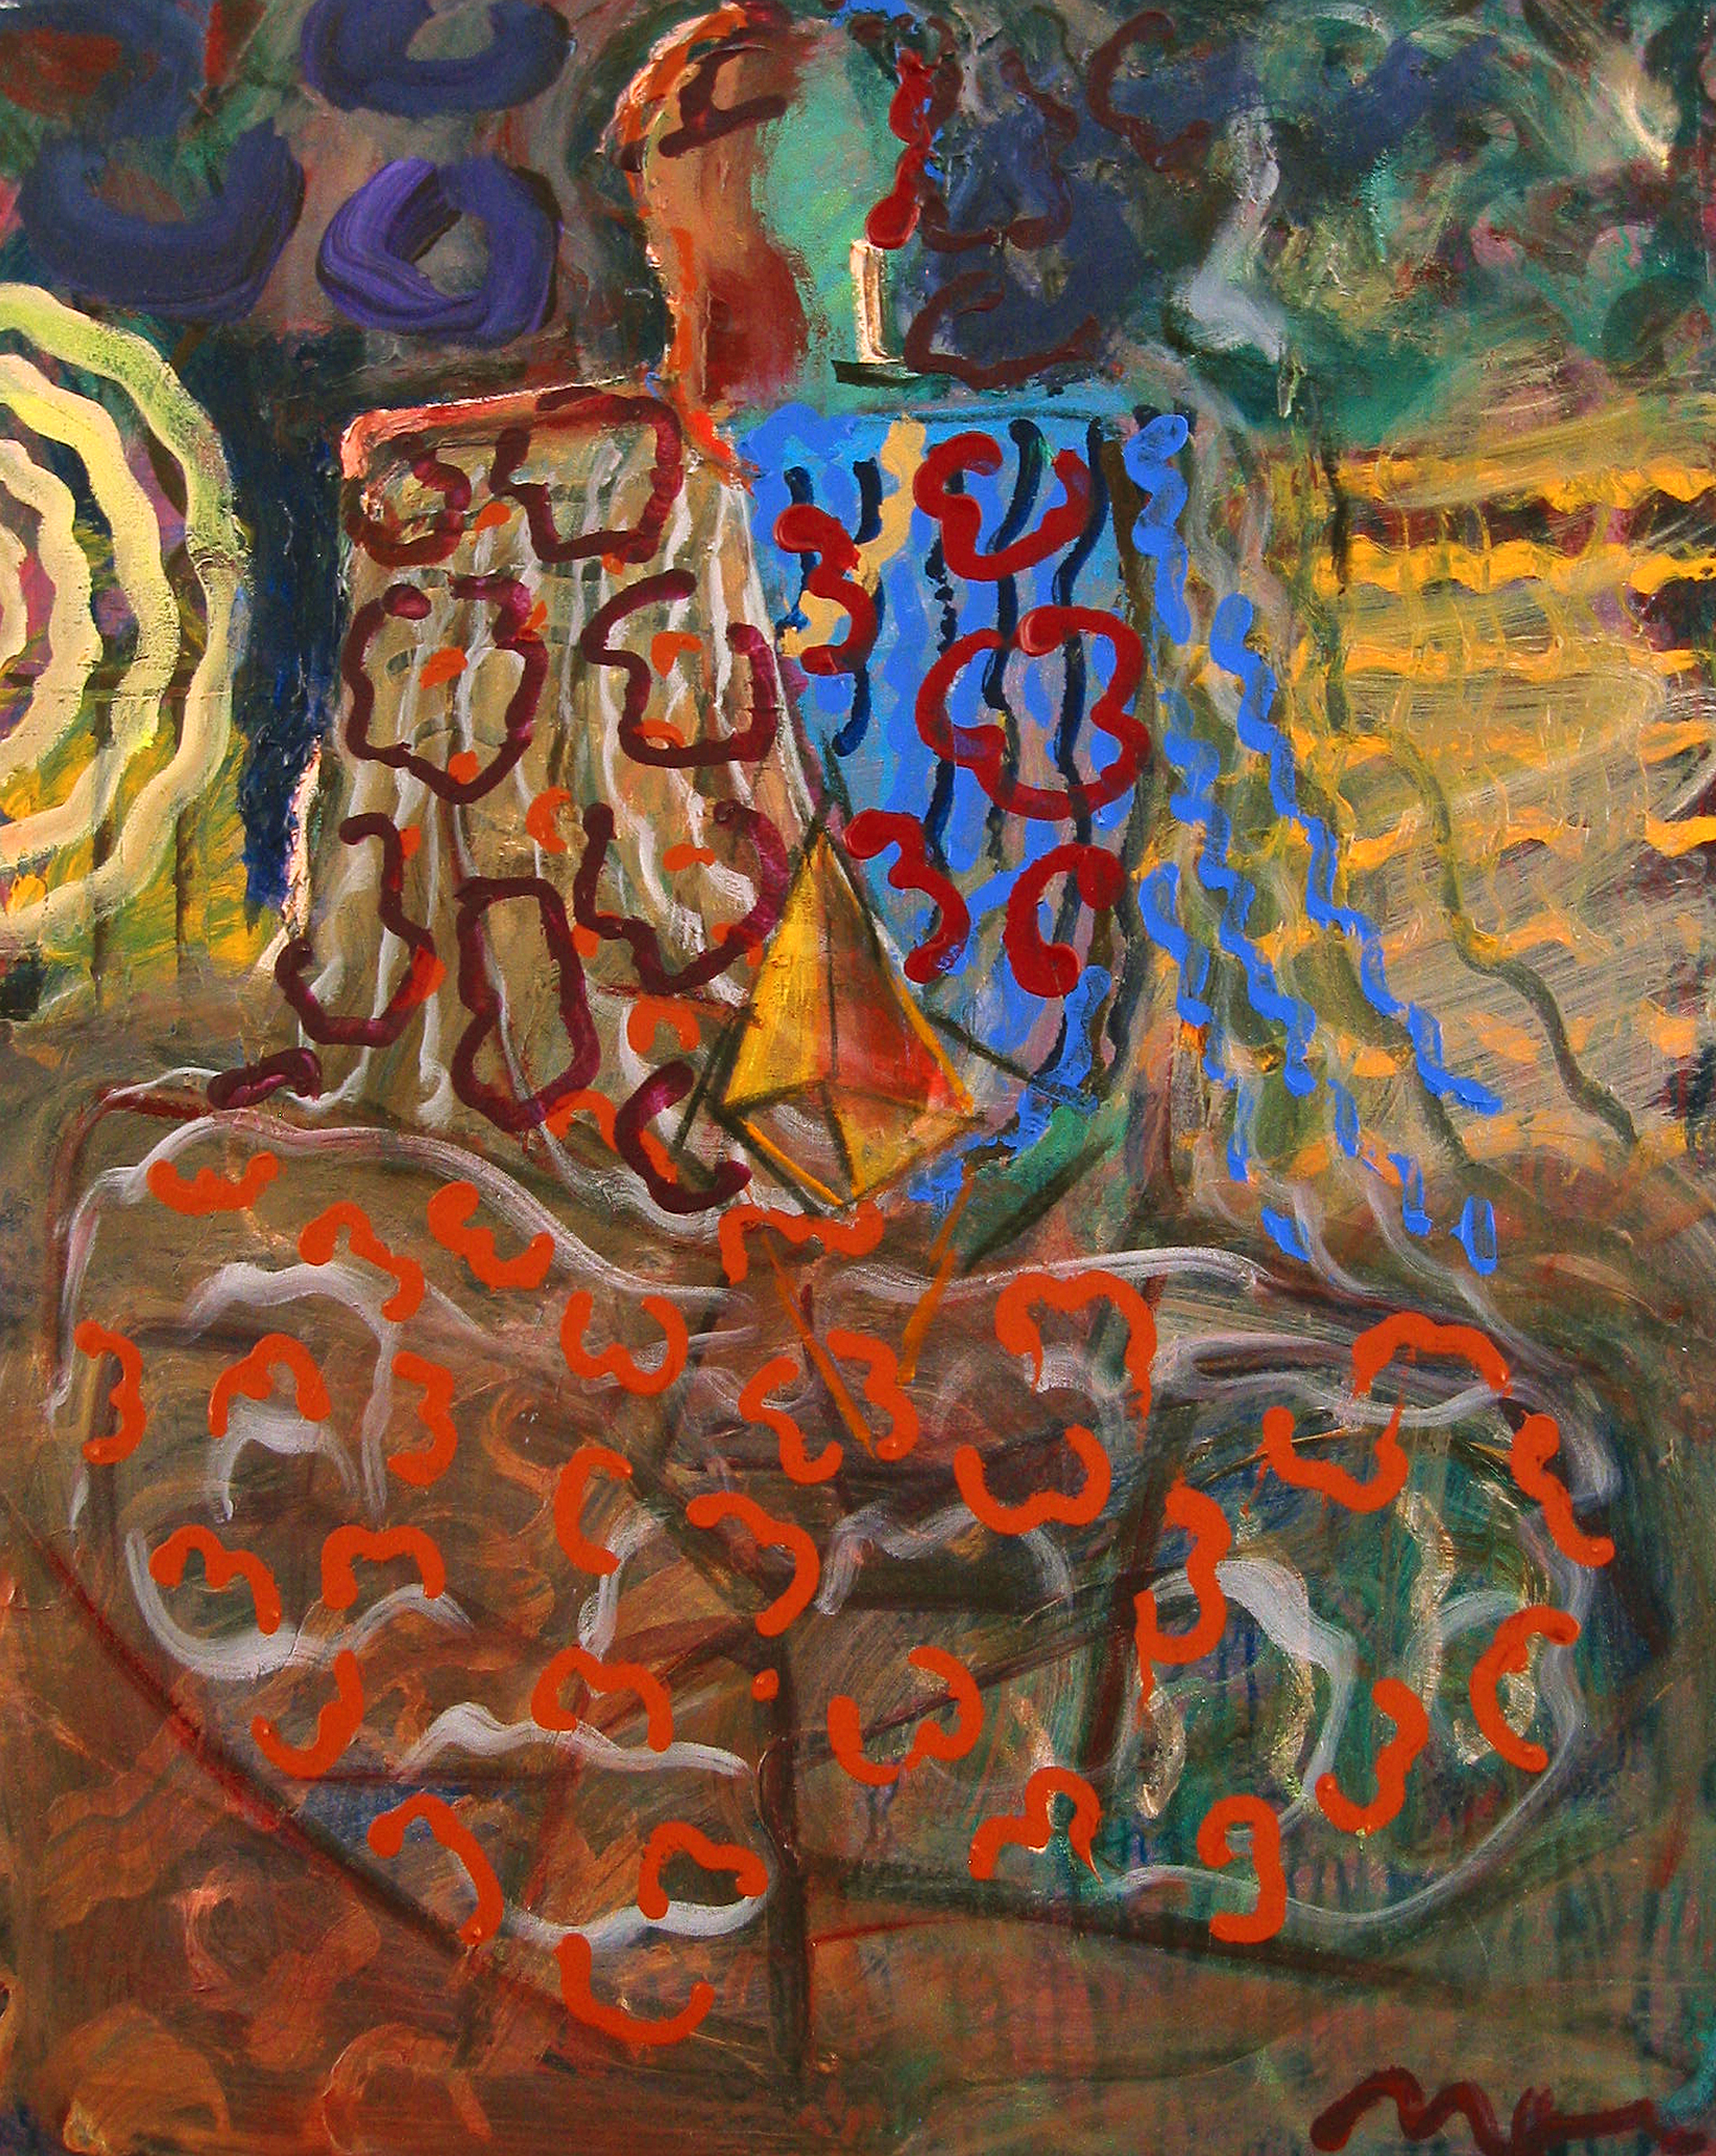 Diamond Twilight, 2006, 24 x 30 inches, Acrylic on canvas